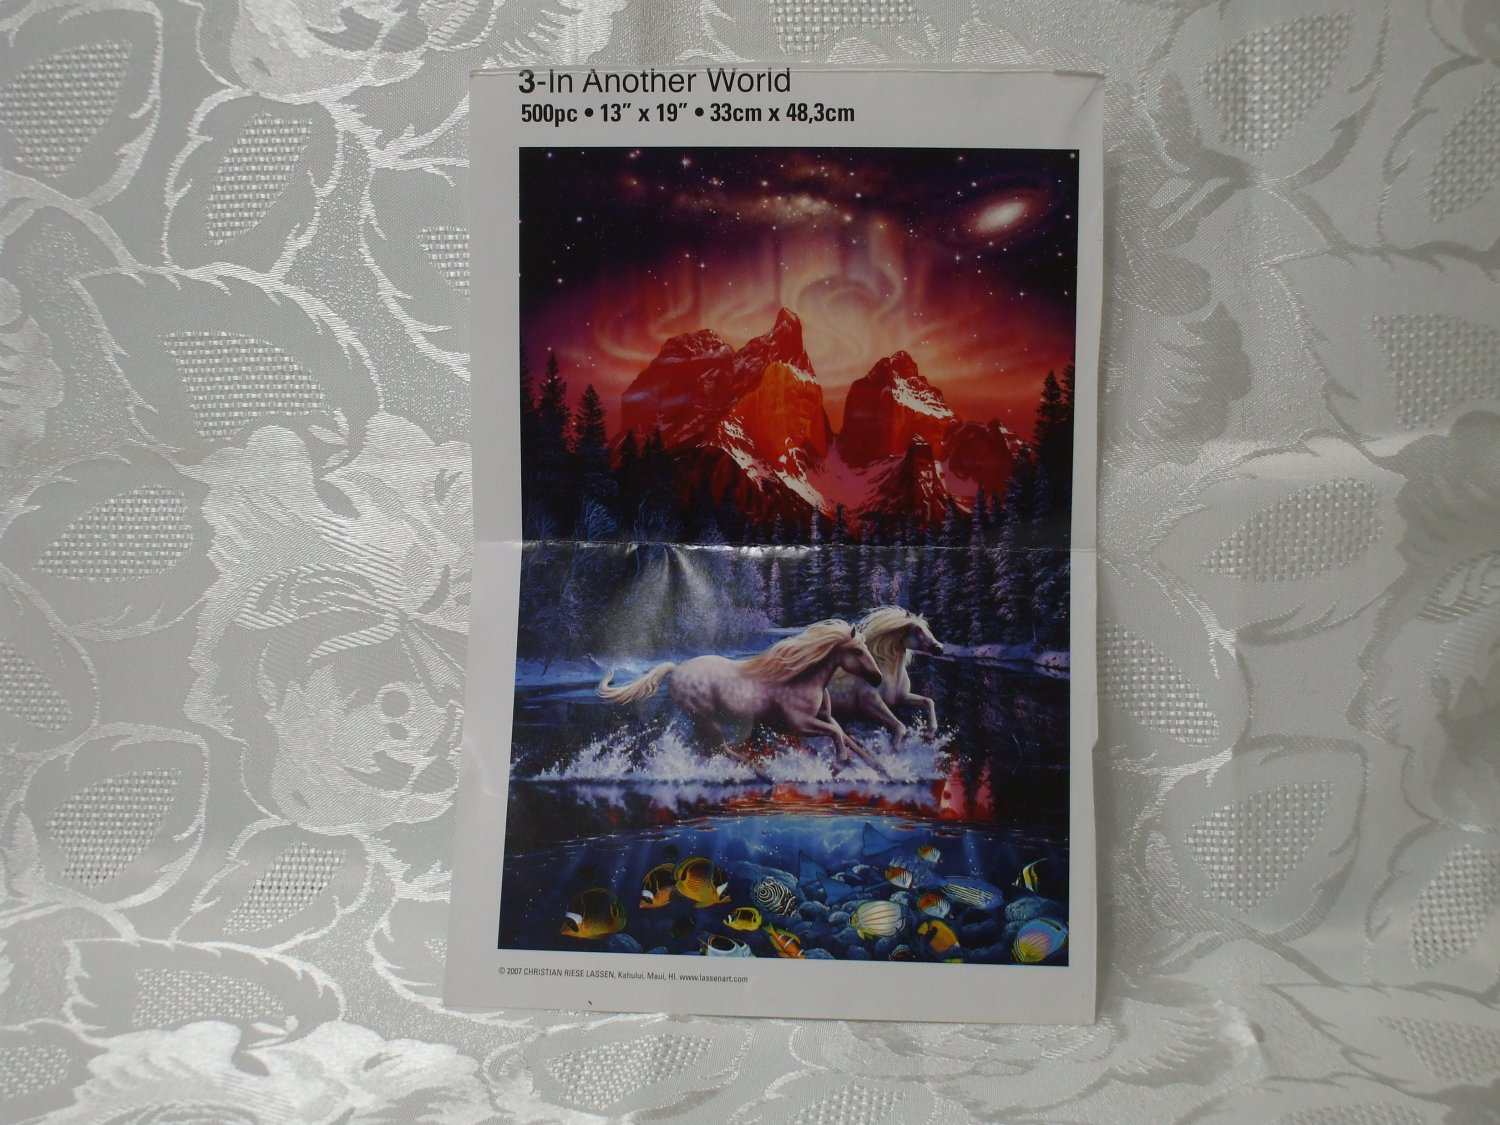 500 Pc Puzzle In Another World  Puzzle  13 in x 19 in NO BOX